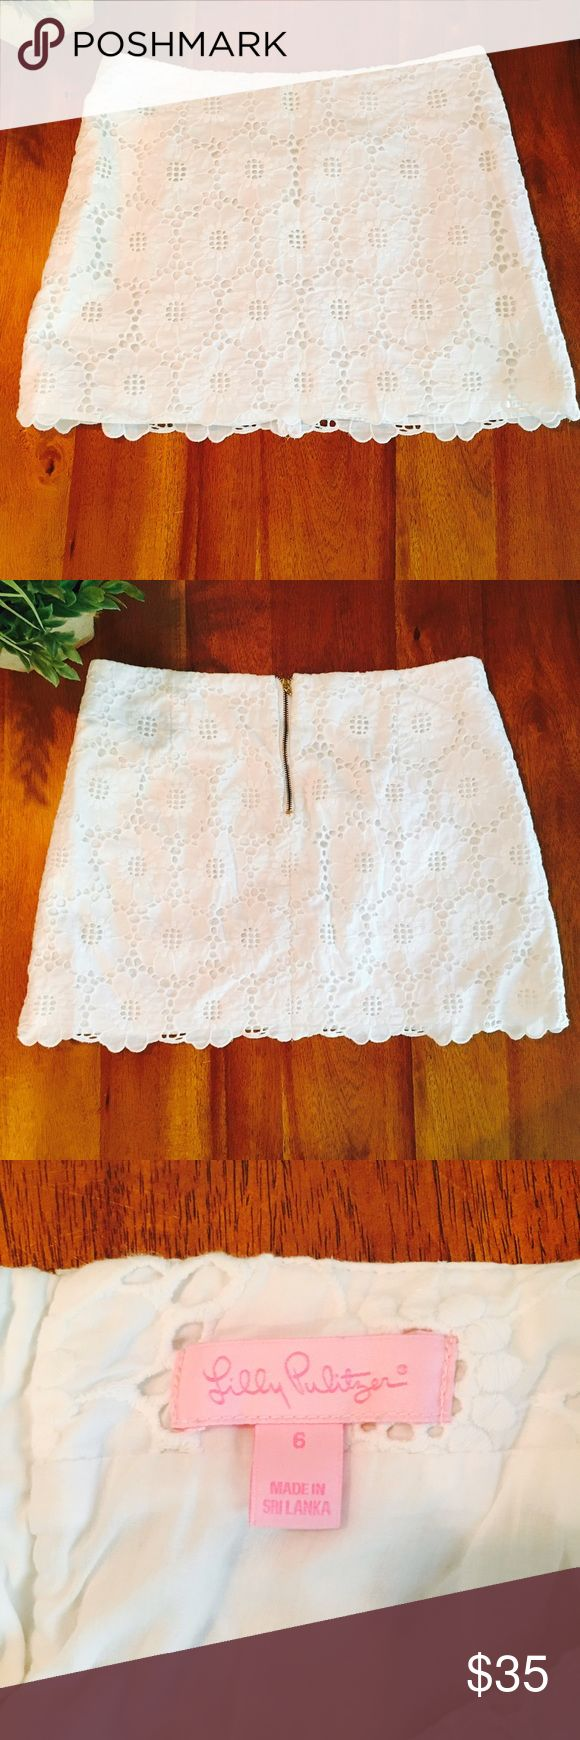 Lilly Pulitzer white floral embroidered mini skirt Lilly Pulitzer white mini skirt with white floral detail. Zipper works, but a piece is broken off (see last picture) reflected in price. Size 6. Lilly Pulitzer Skirts